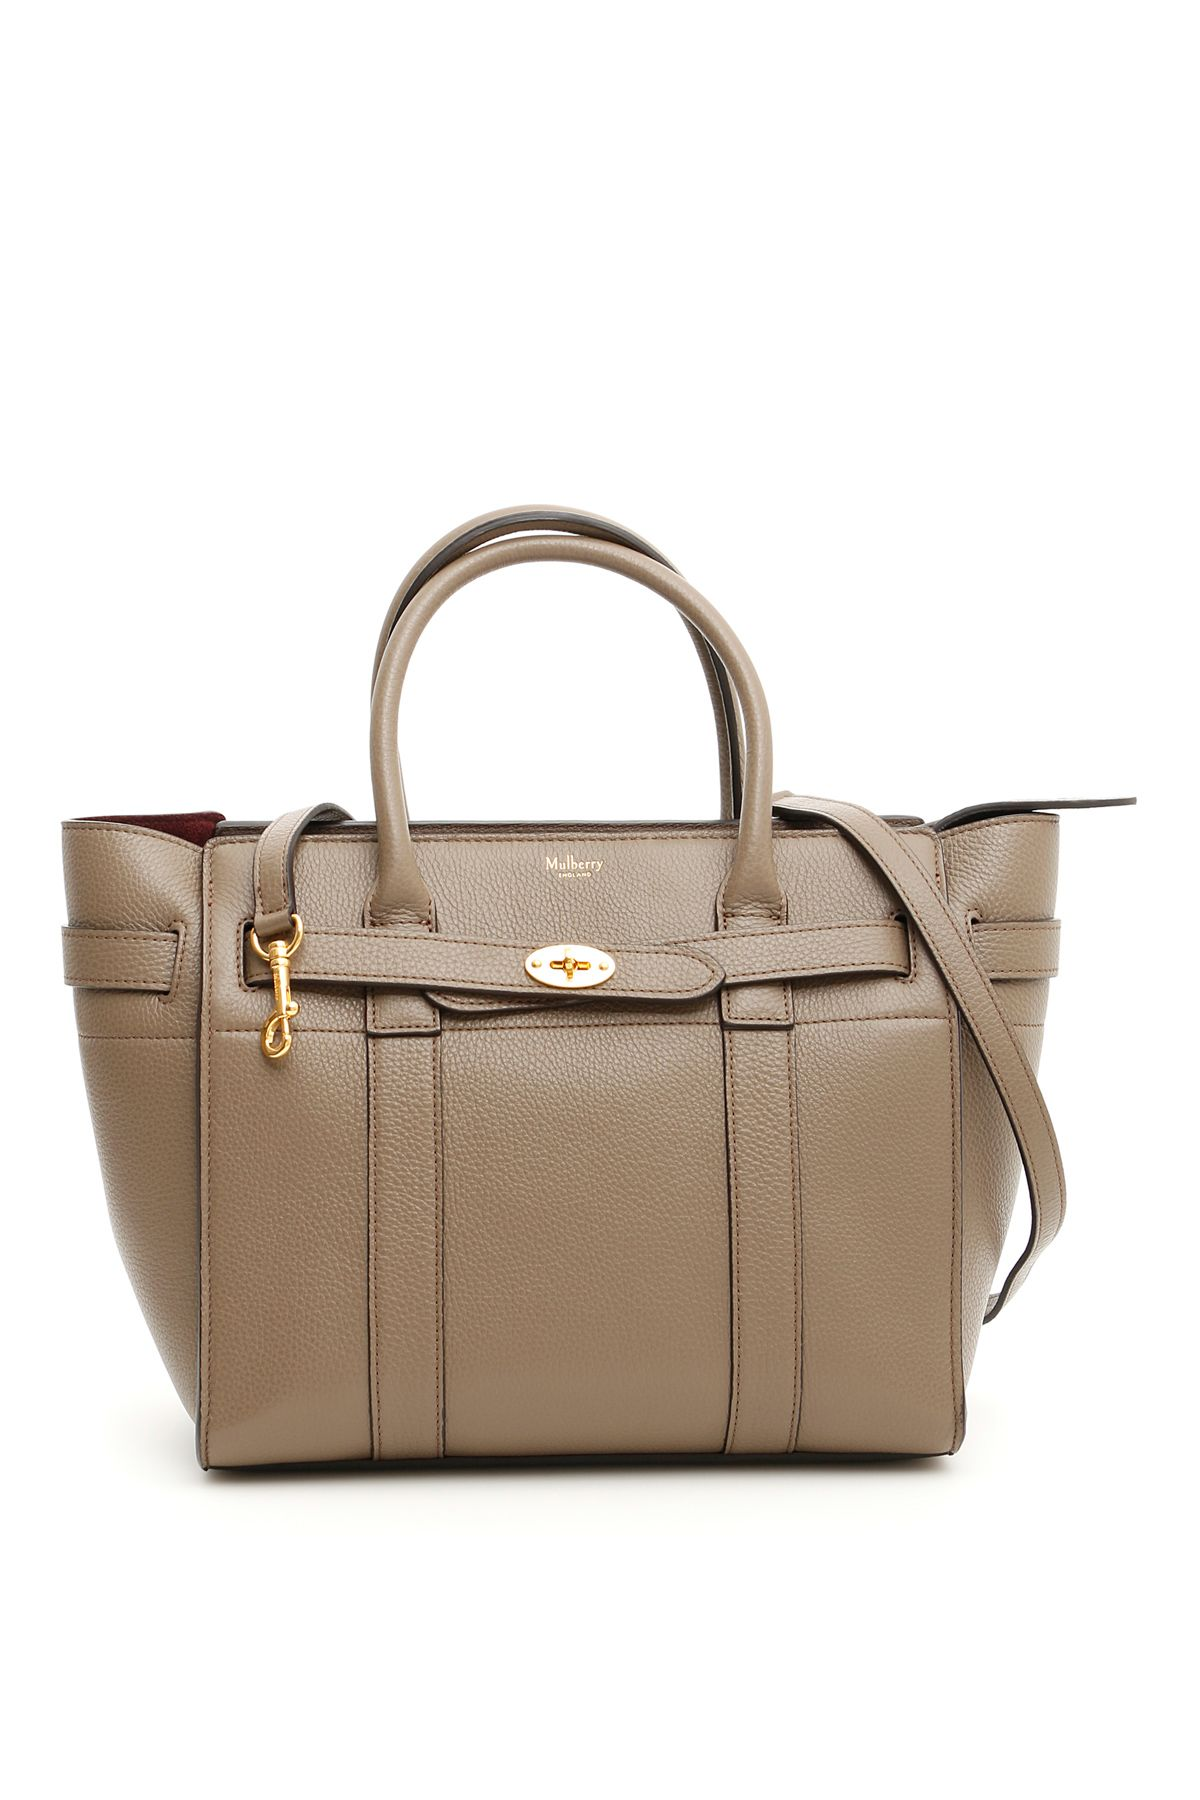 Mulberry Bags ZIPPED BAYSWATER SMALL BAG